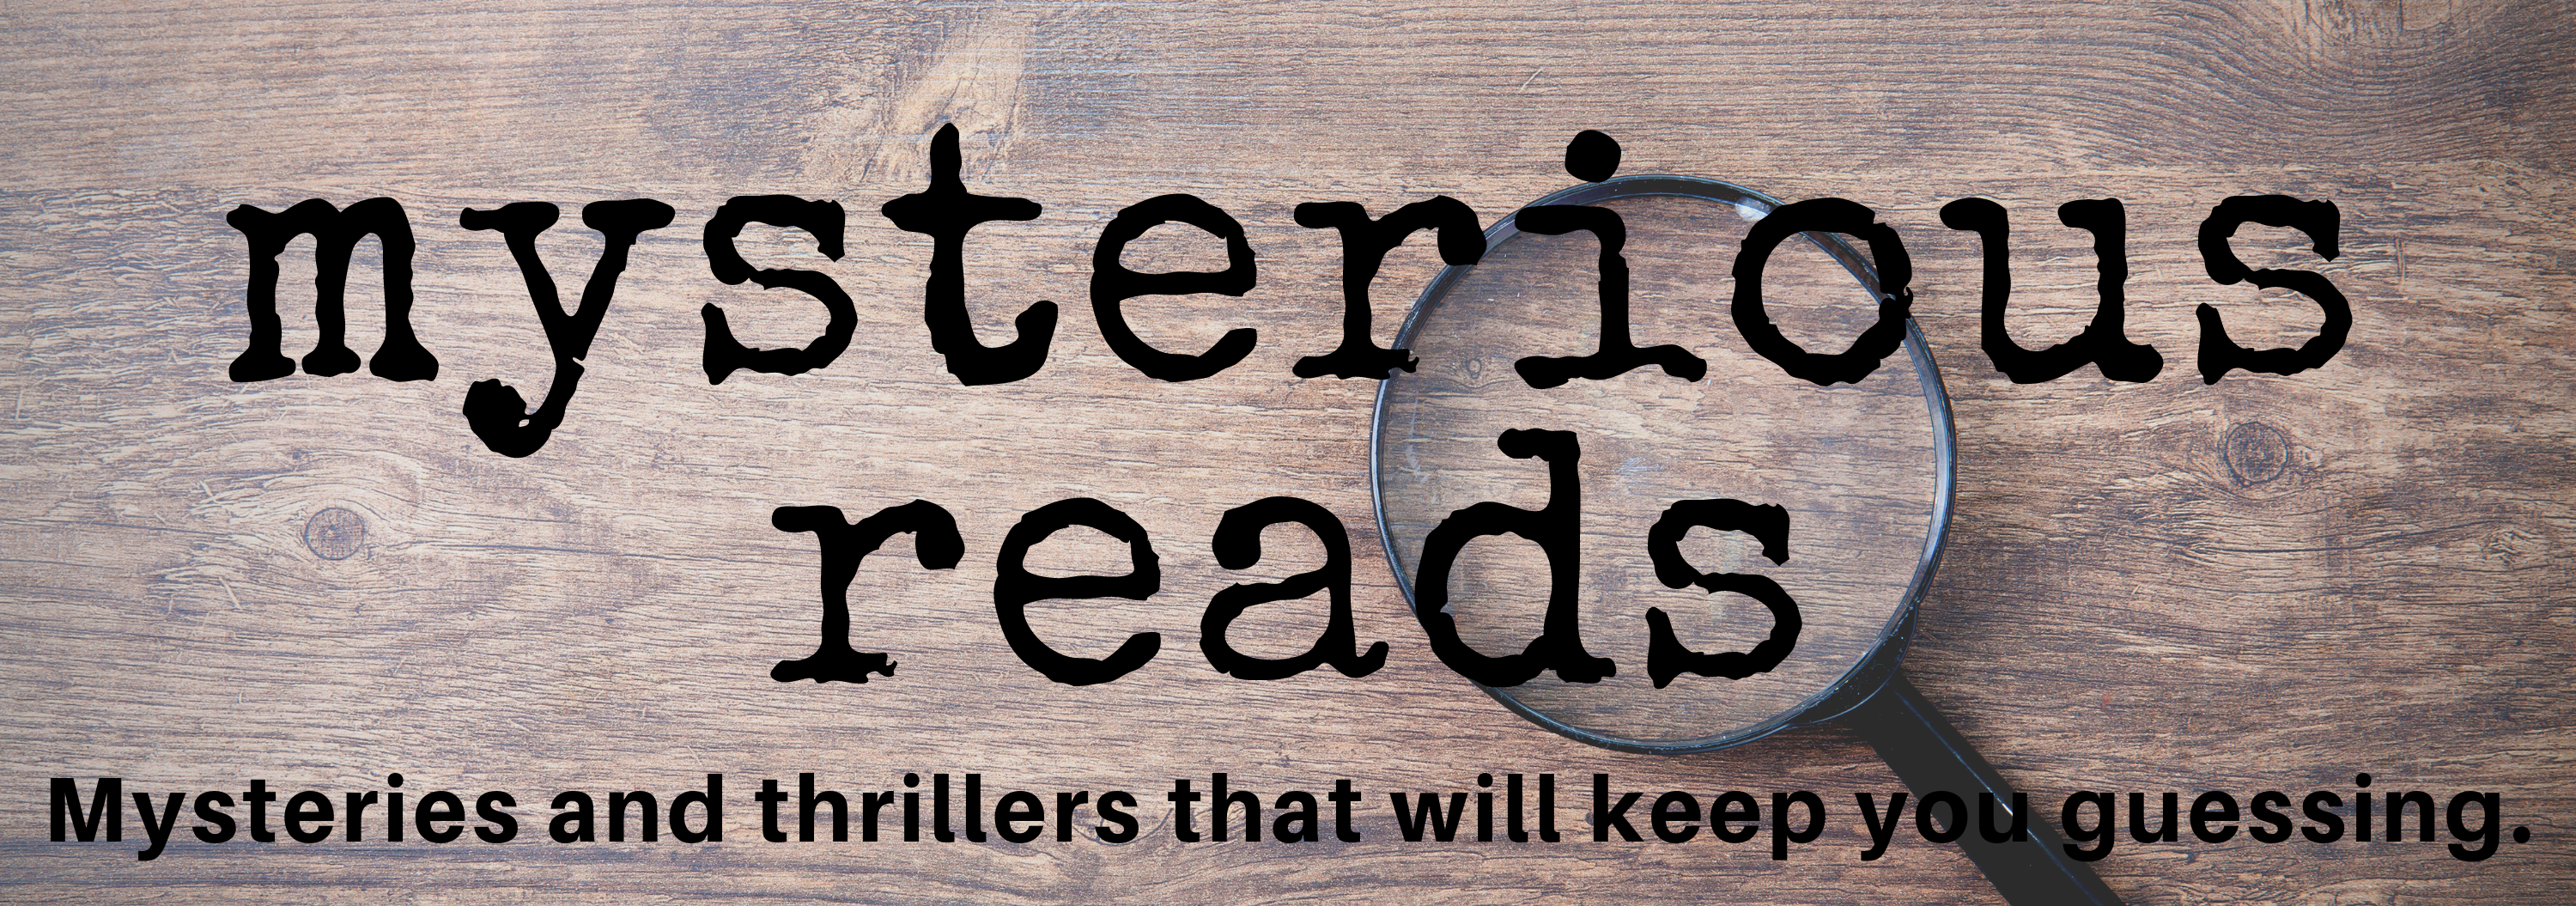 Mysterious Reads: Mysteries and Thrillers That Will Keep You